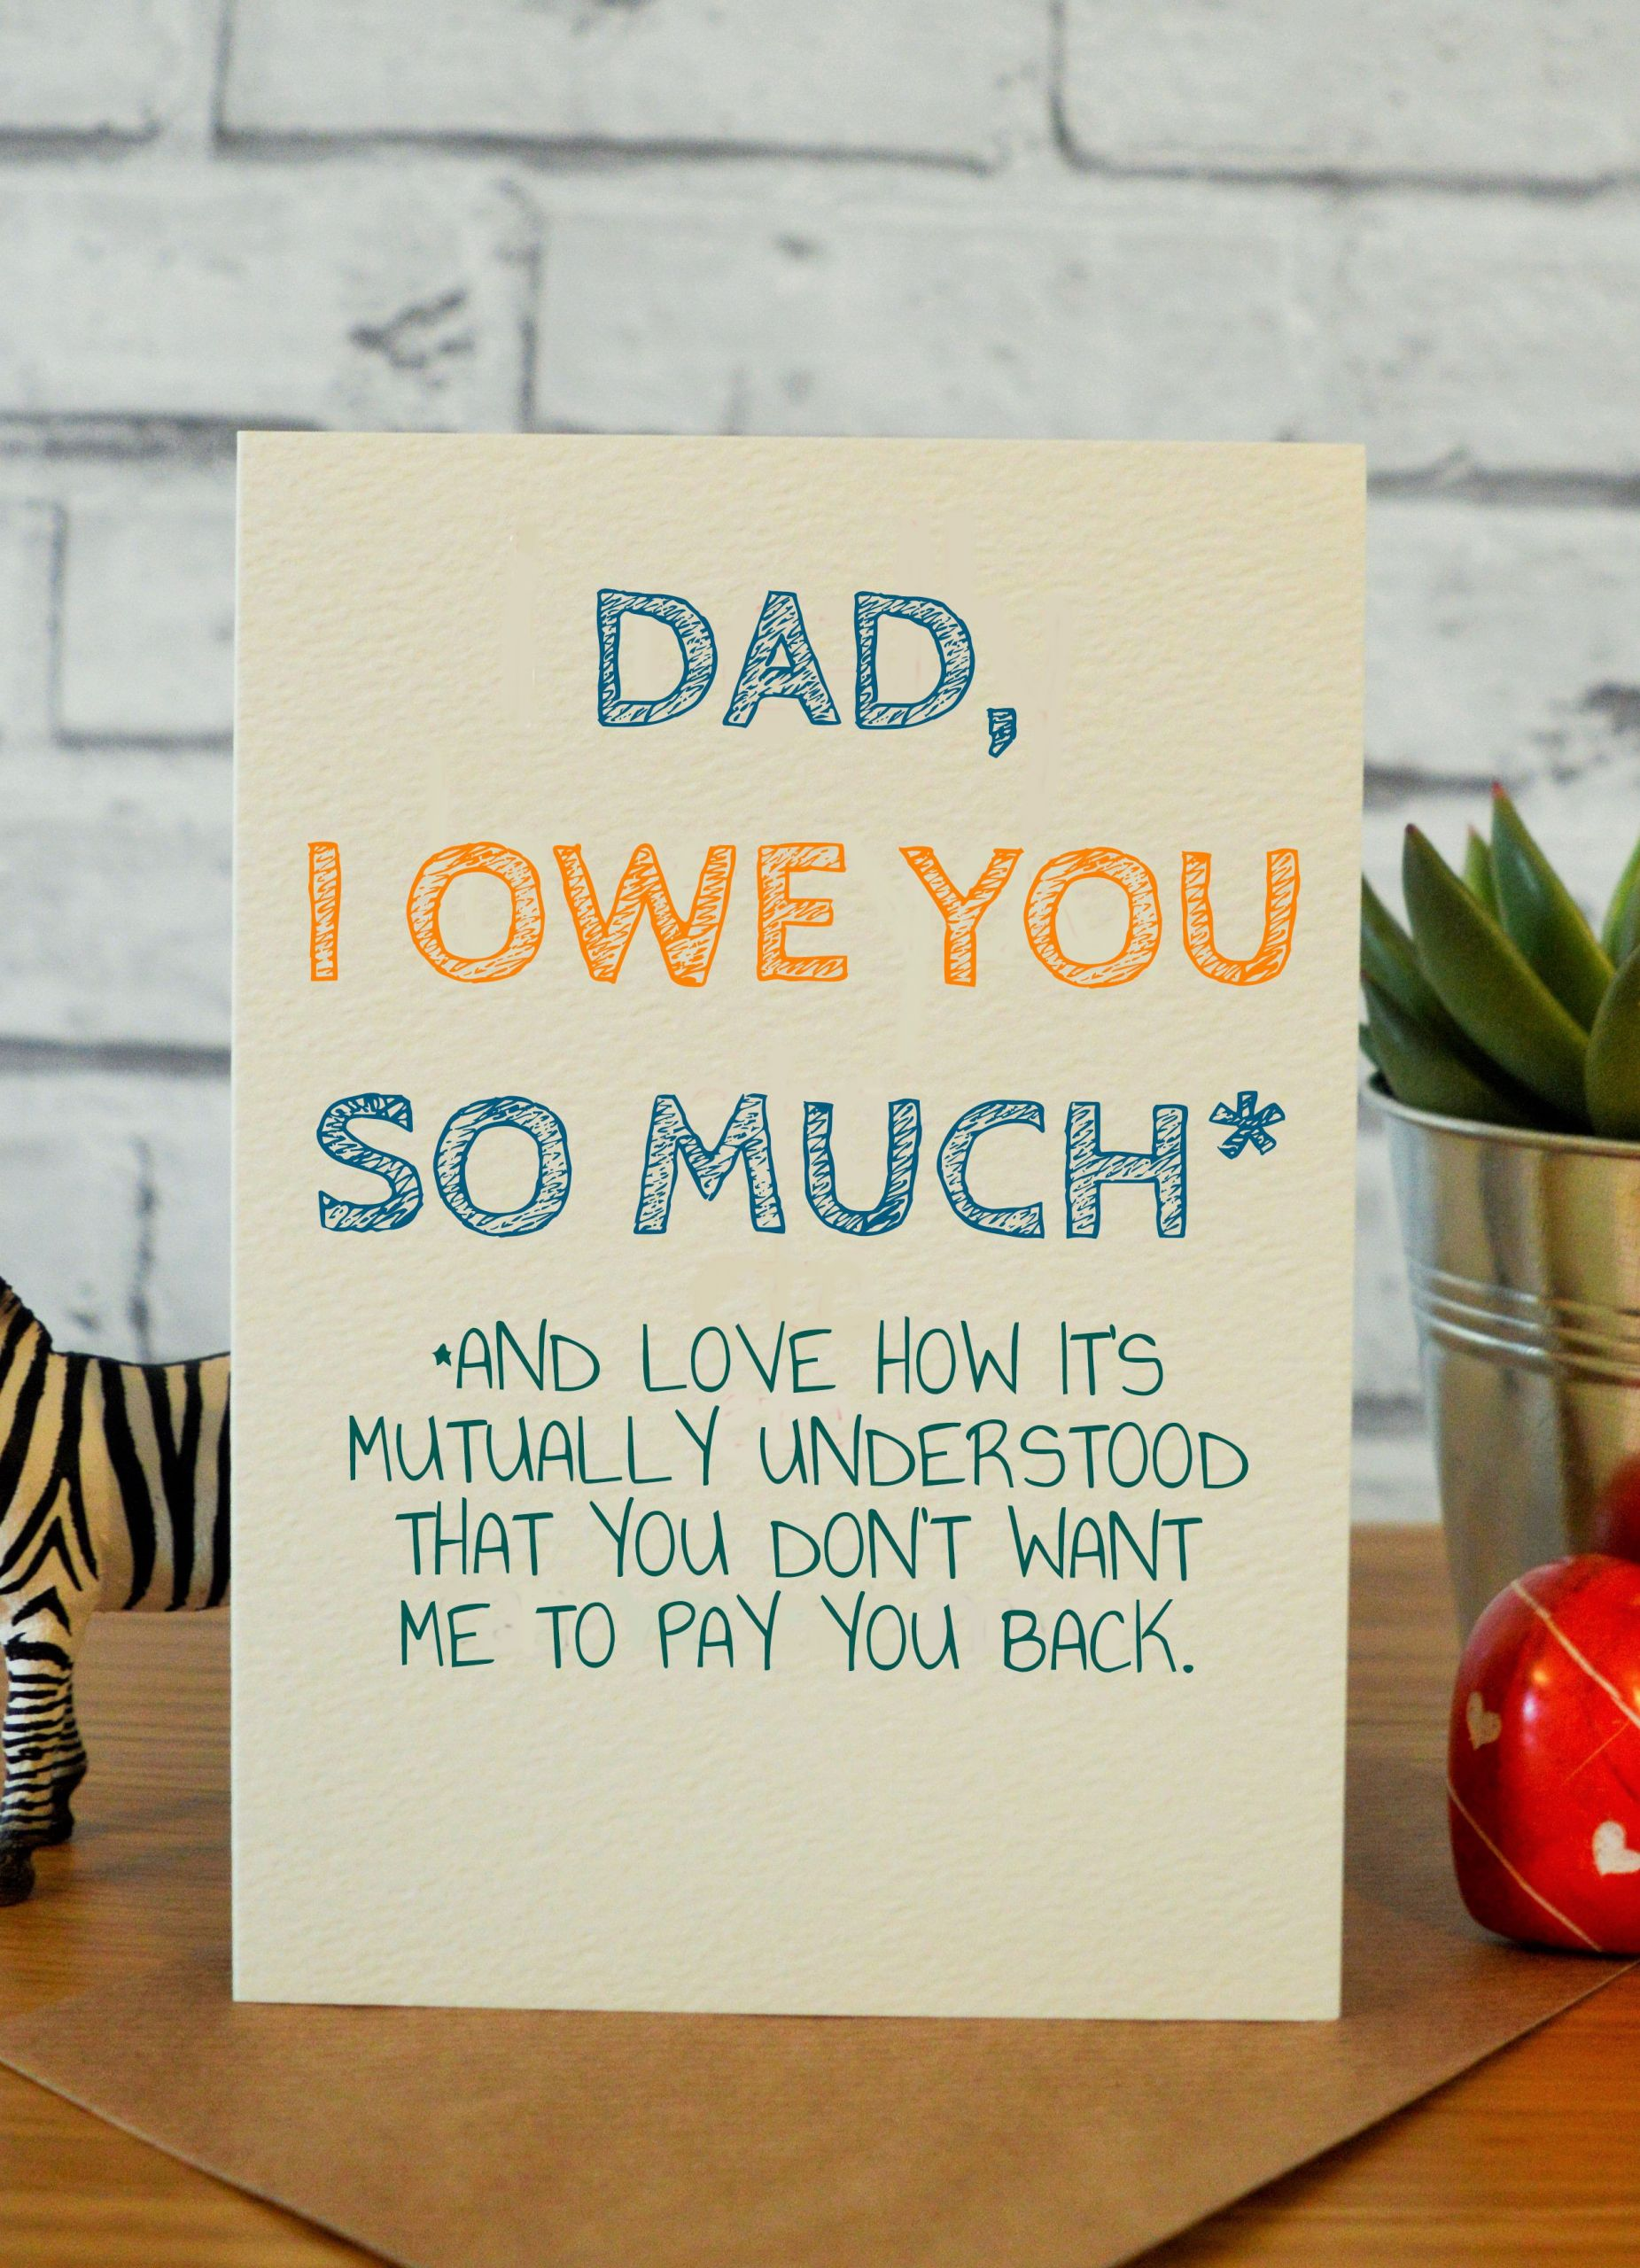 22 Ideas for Birthday Gift Ideas for Father – Home, Family ...